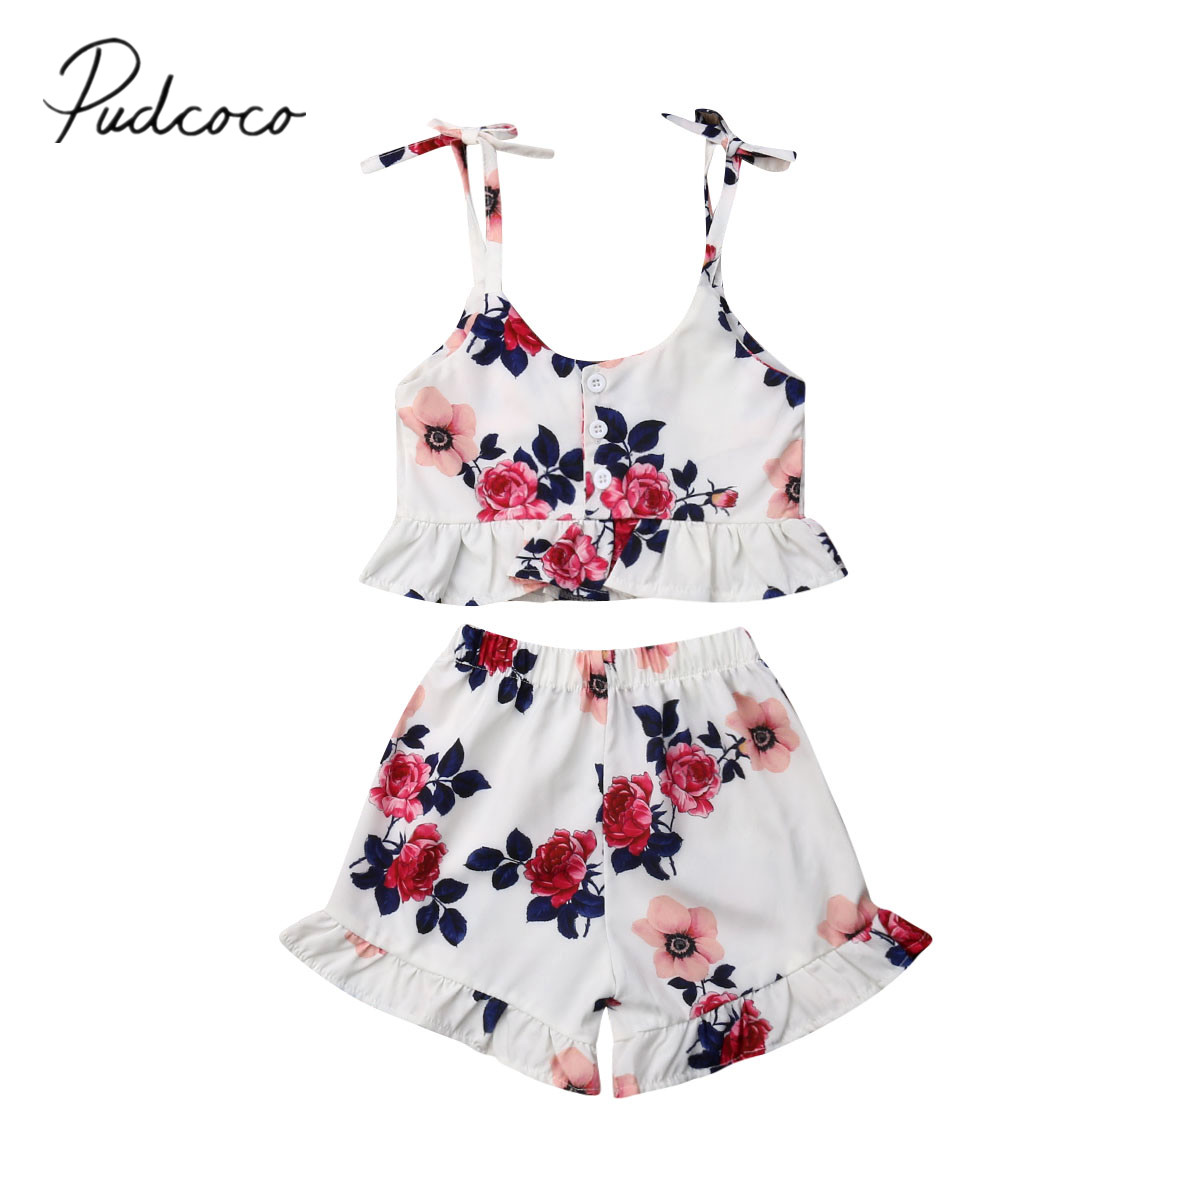 3a899c7f1f 2019 Baby Summer Clothing 0-3Y Kid Baby Girl Clothes Sets Sleeveless  Ruffles Crop Tops